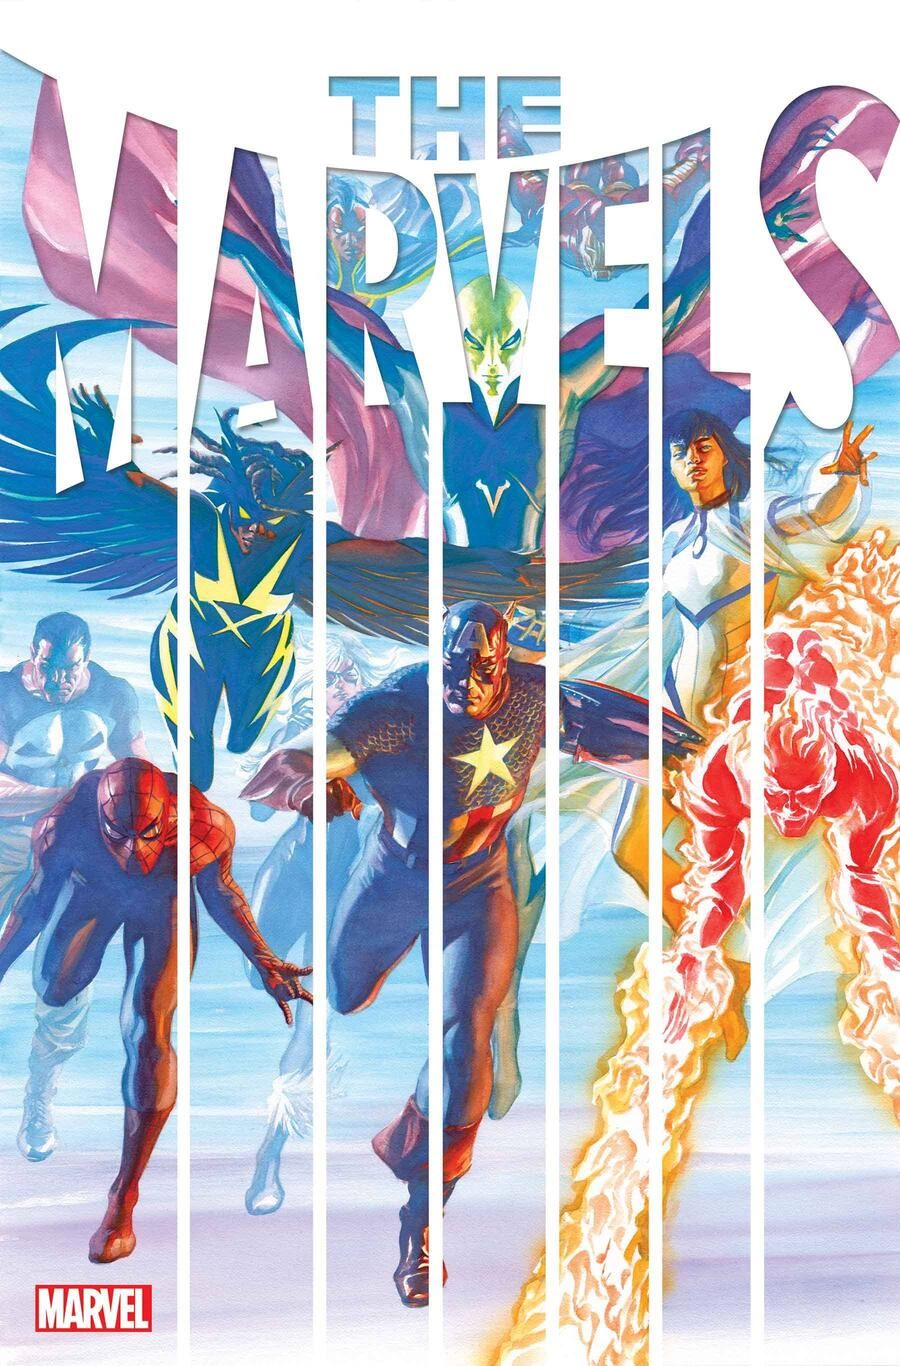 marvels_2021001_cov THE MARVELS #1 will introduce new heroes and villains